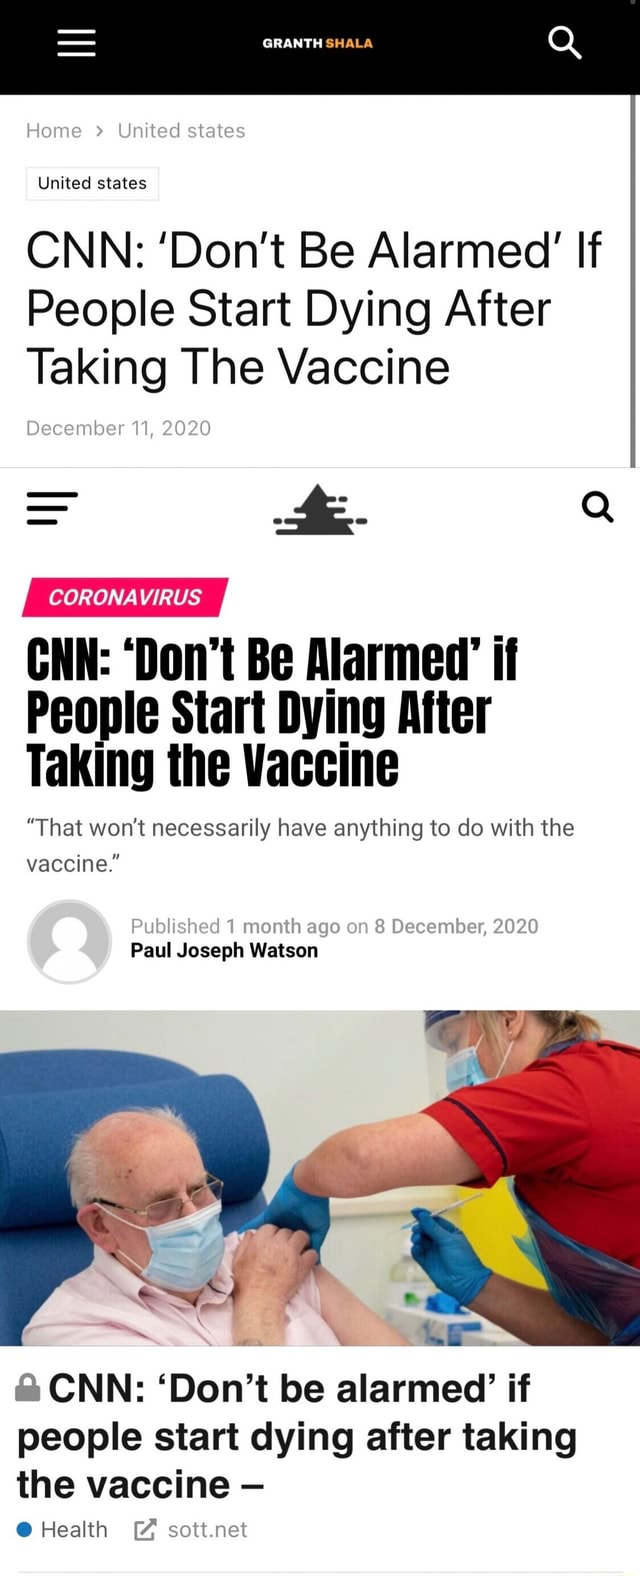 Home United states United states GRANTH SHALA CNN Do not Be Alarmed If People Start Dying After Taking The Vaccine December 11, 2020 CNN Do not Be Alarmed if Taking the Vaccine That won't necessarily have anything to do with the vaccine. Published 1 month ago on 8 December, 2020 Paul Joseph Watson CNN Do not be alarmed if people start dying after taking the vaccine Health sott.net memes